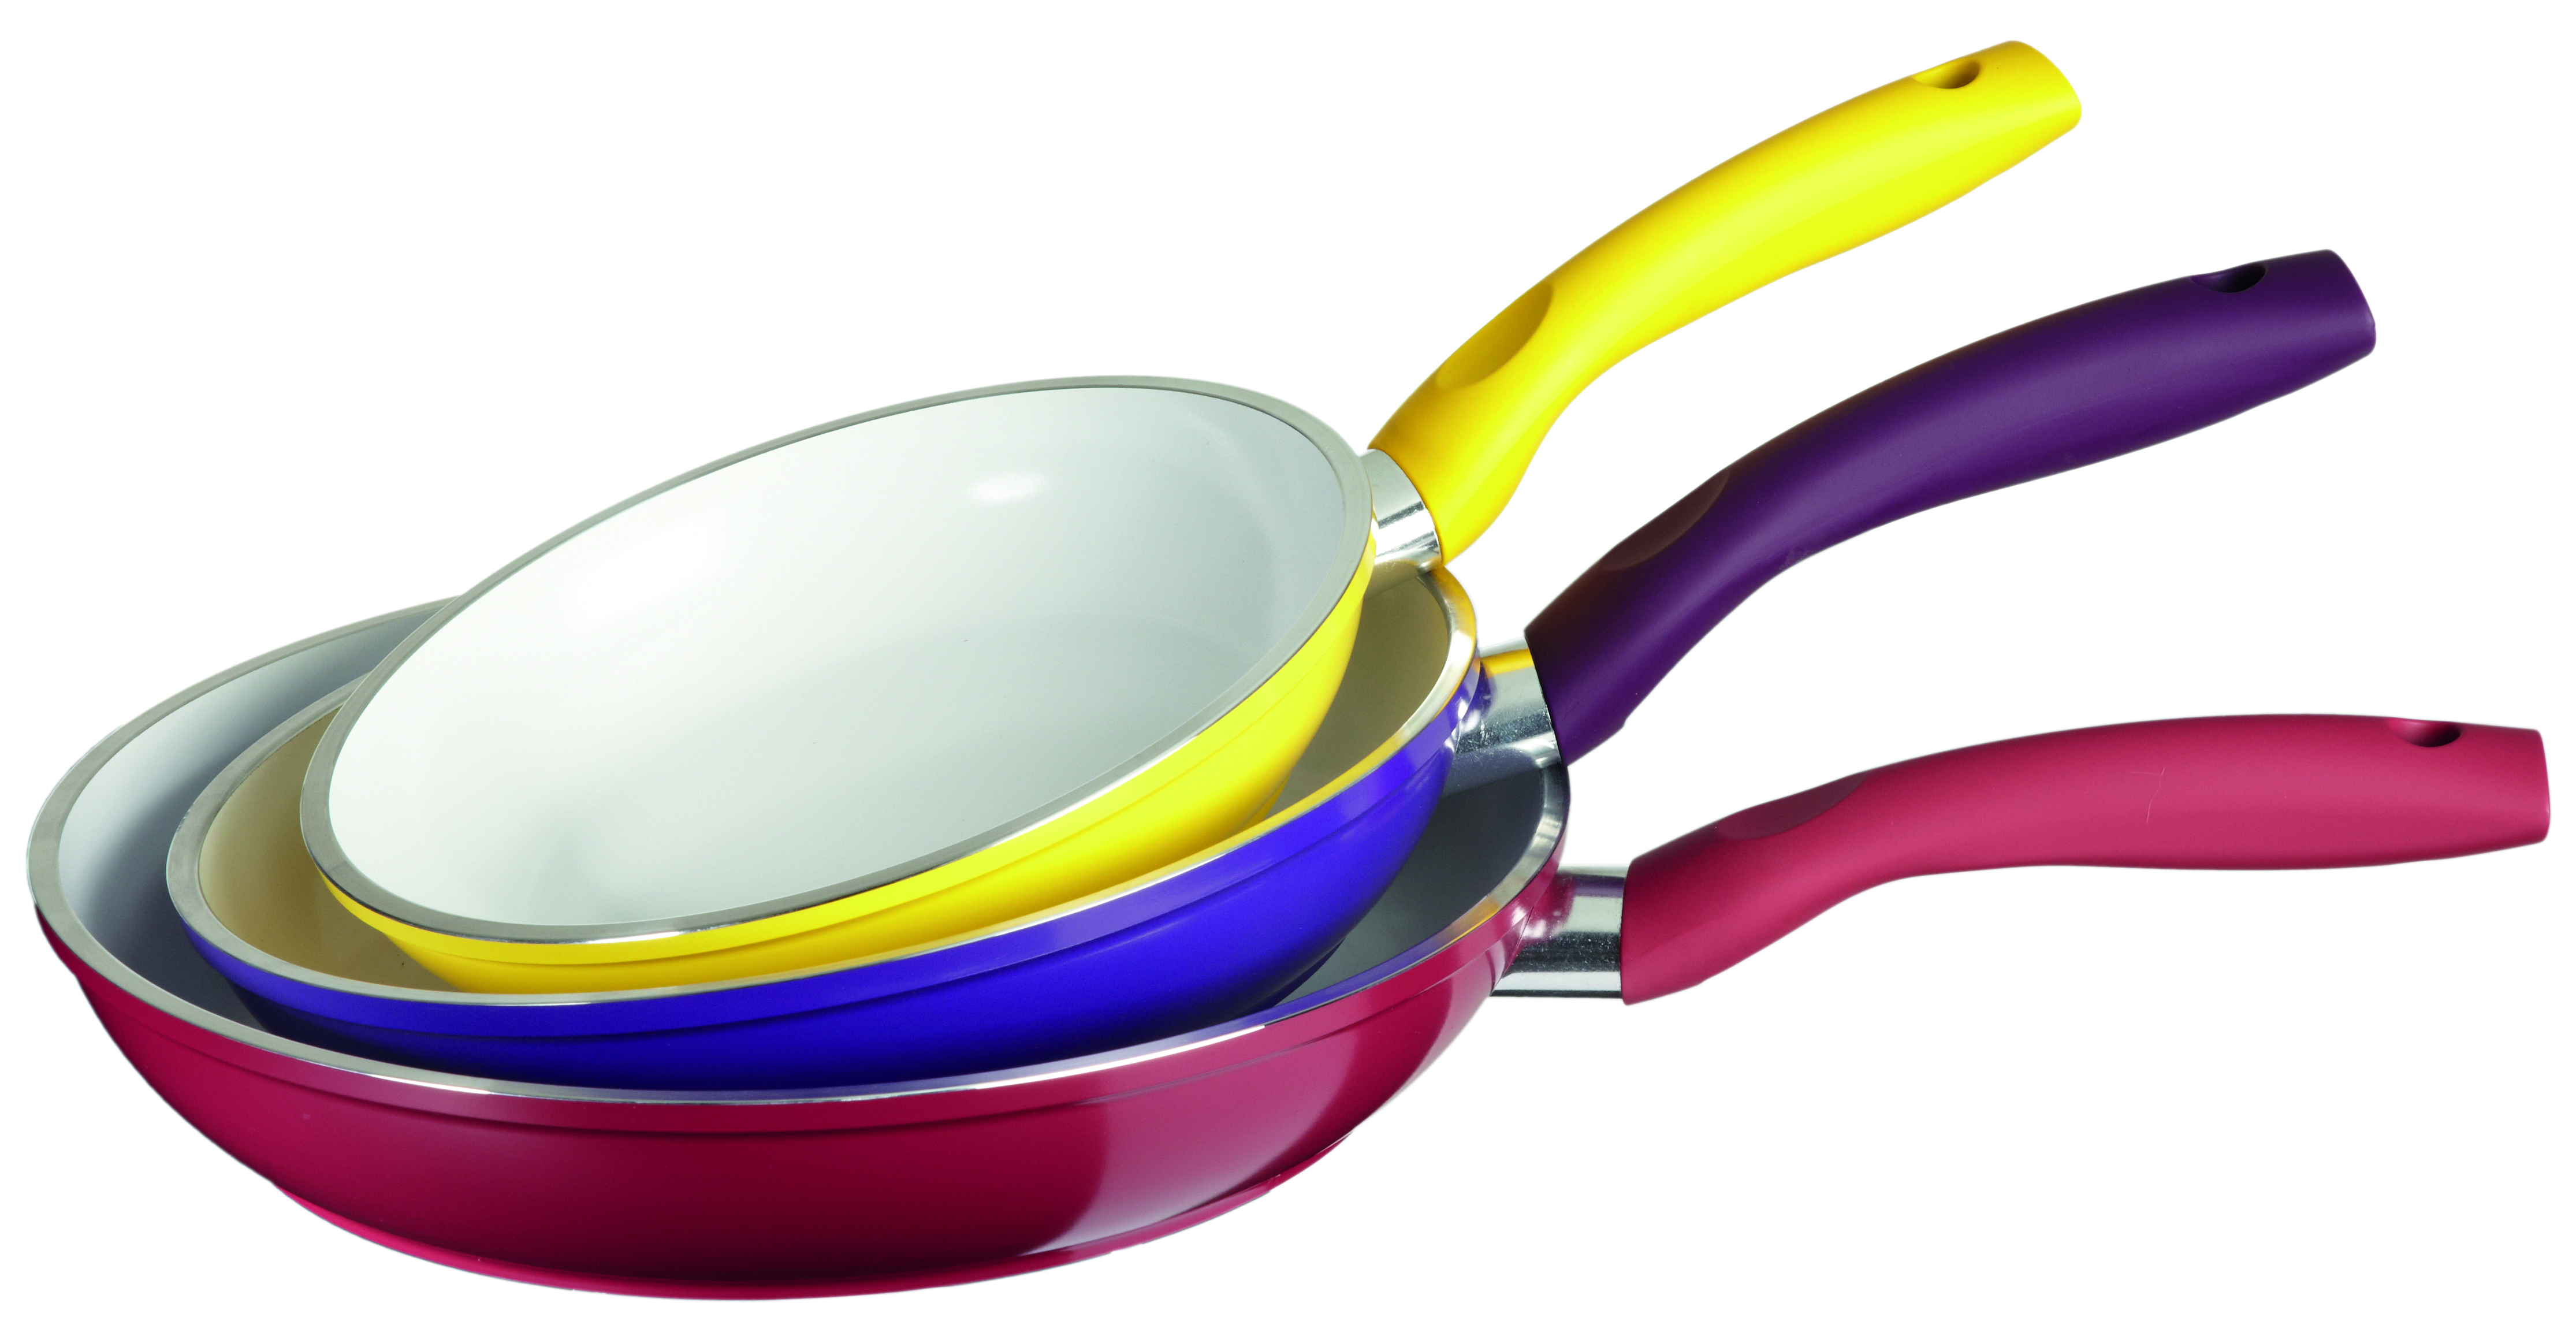 Ceracraft Frying Pans From Jml Parenting Without Tears